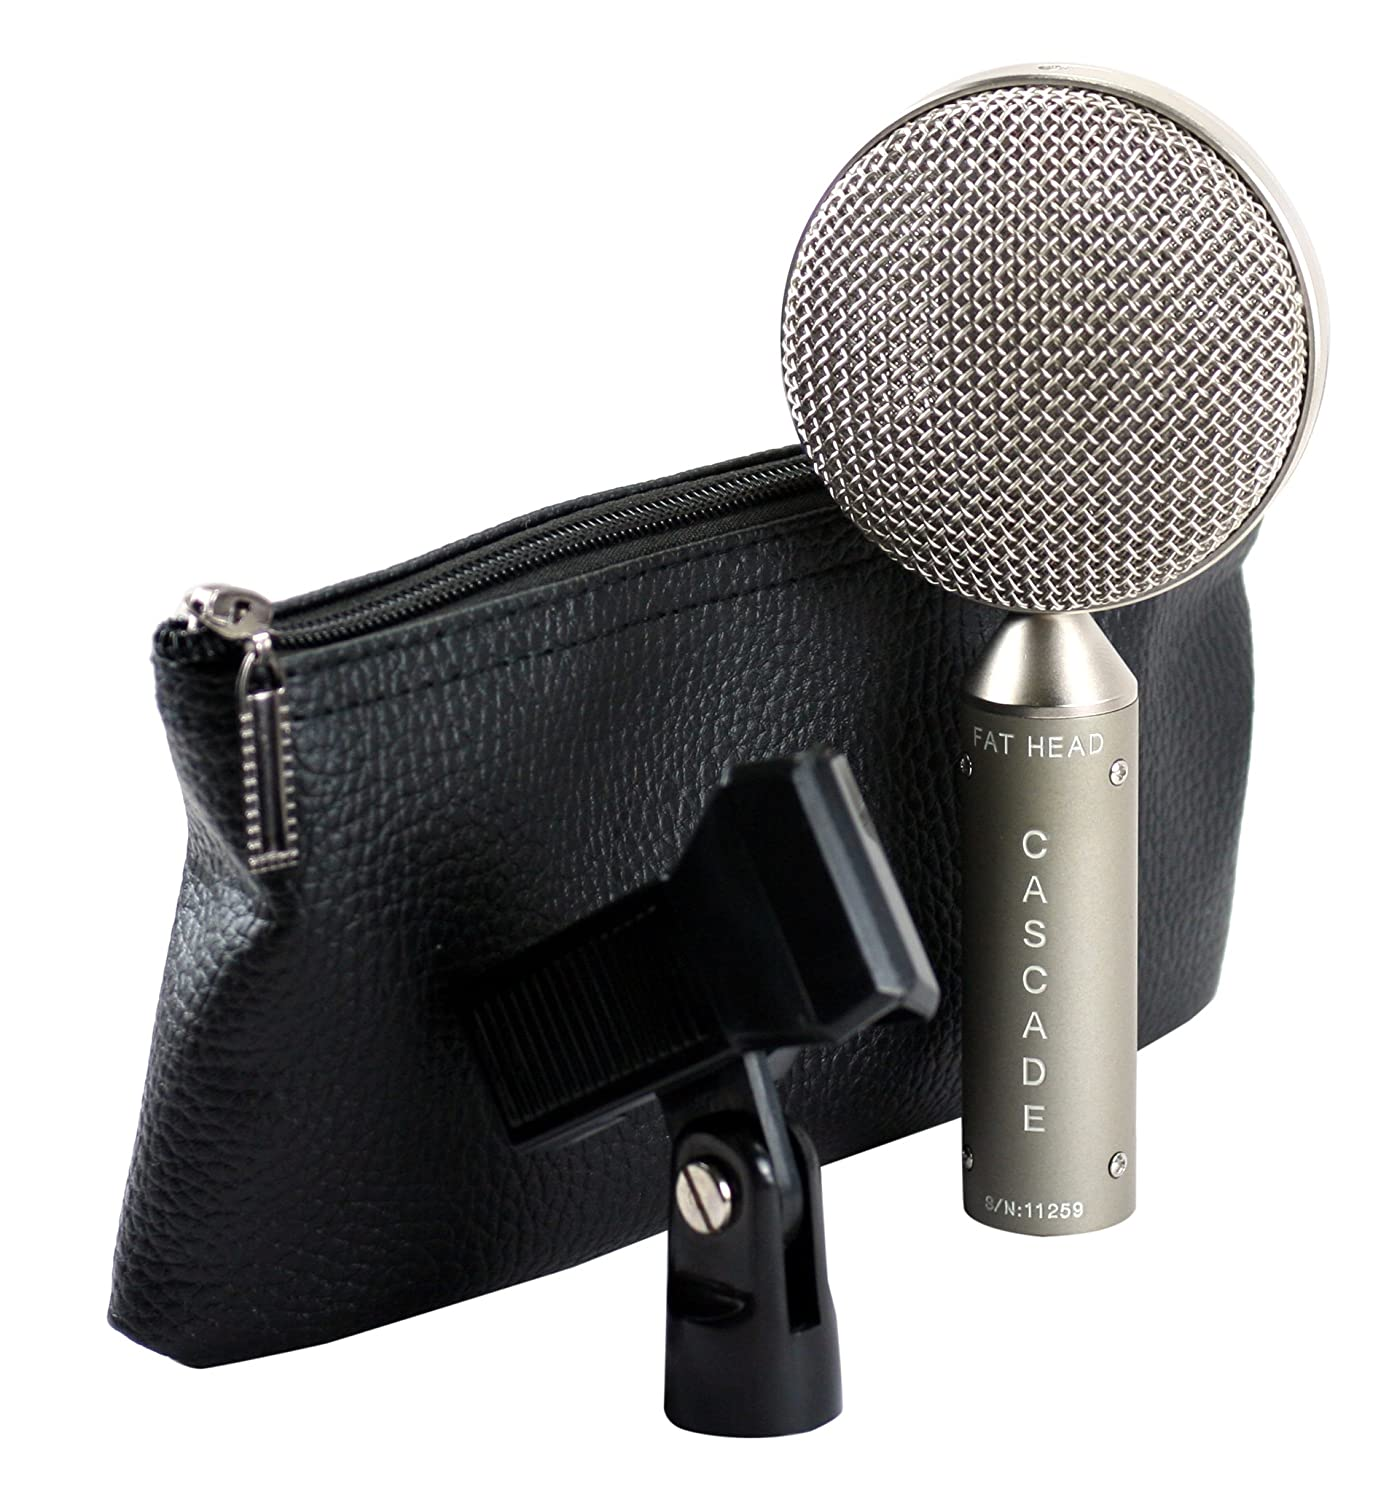 Cascade Microphones 96‐Be-A Microphone FAT HEAD BE